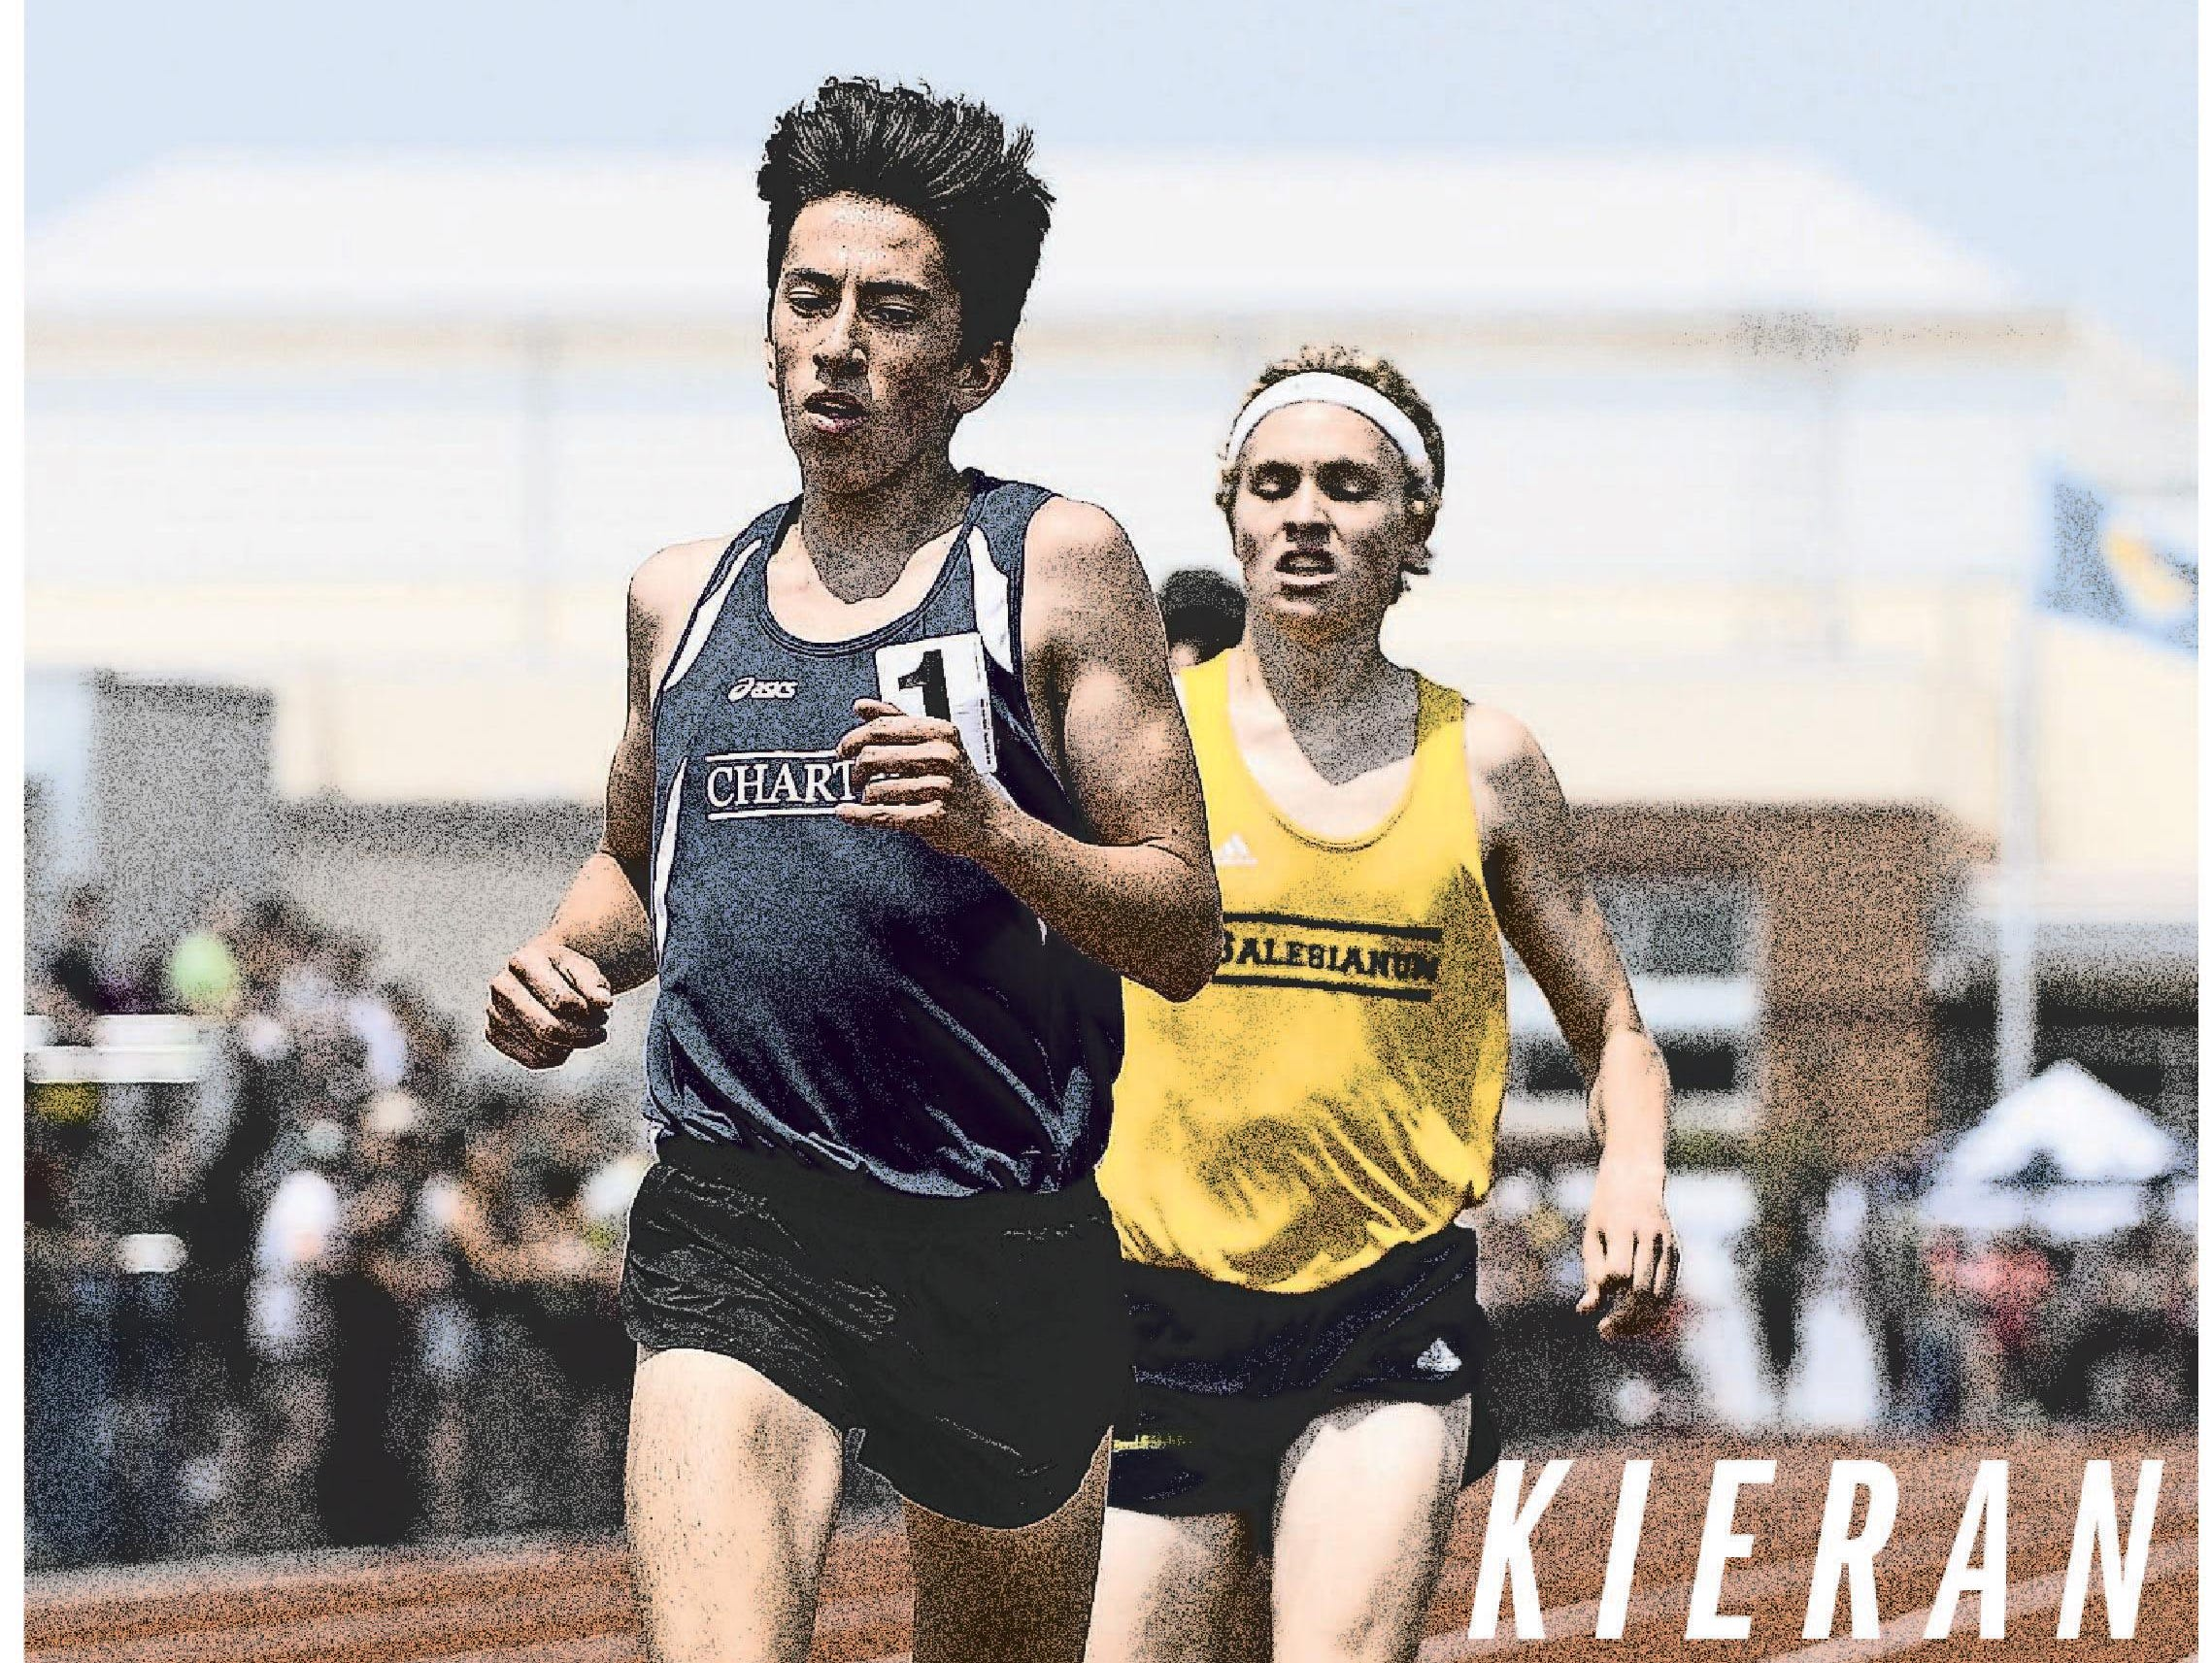 Wilmington Charter's Kieran Tuntivate wins the Division I state title in the 1,600-meter race.